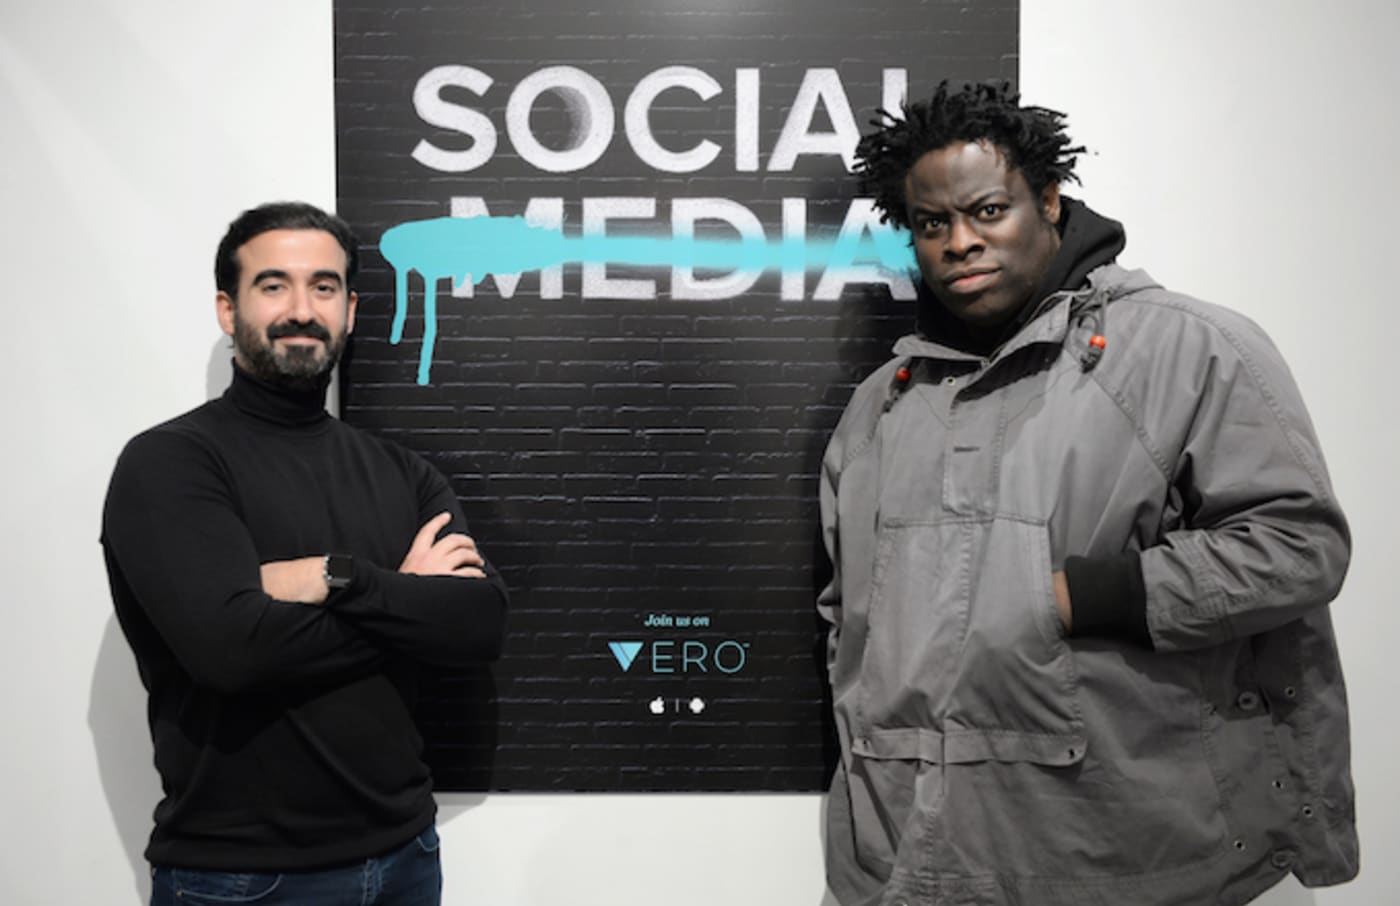 Ayman Hariri (left), founder of Vero, and Jeymes Samuel at a Vero event.